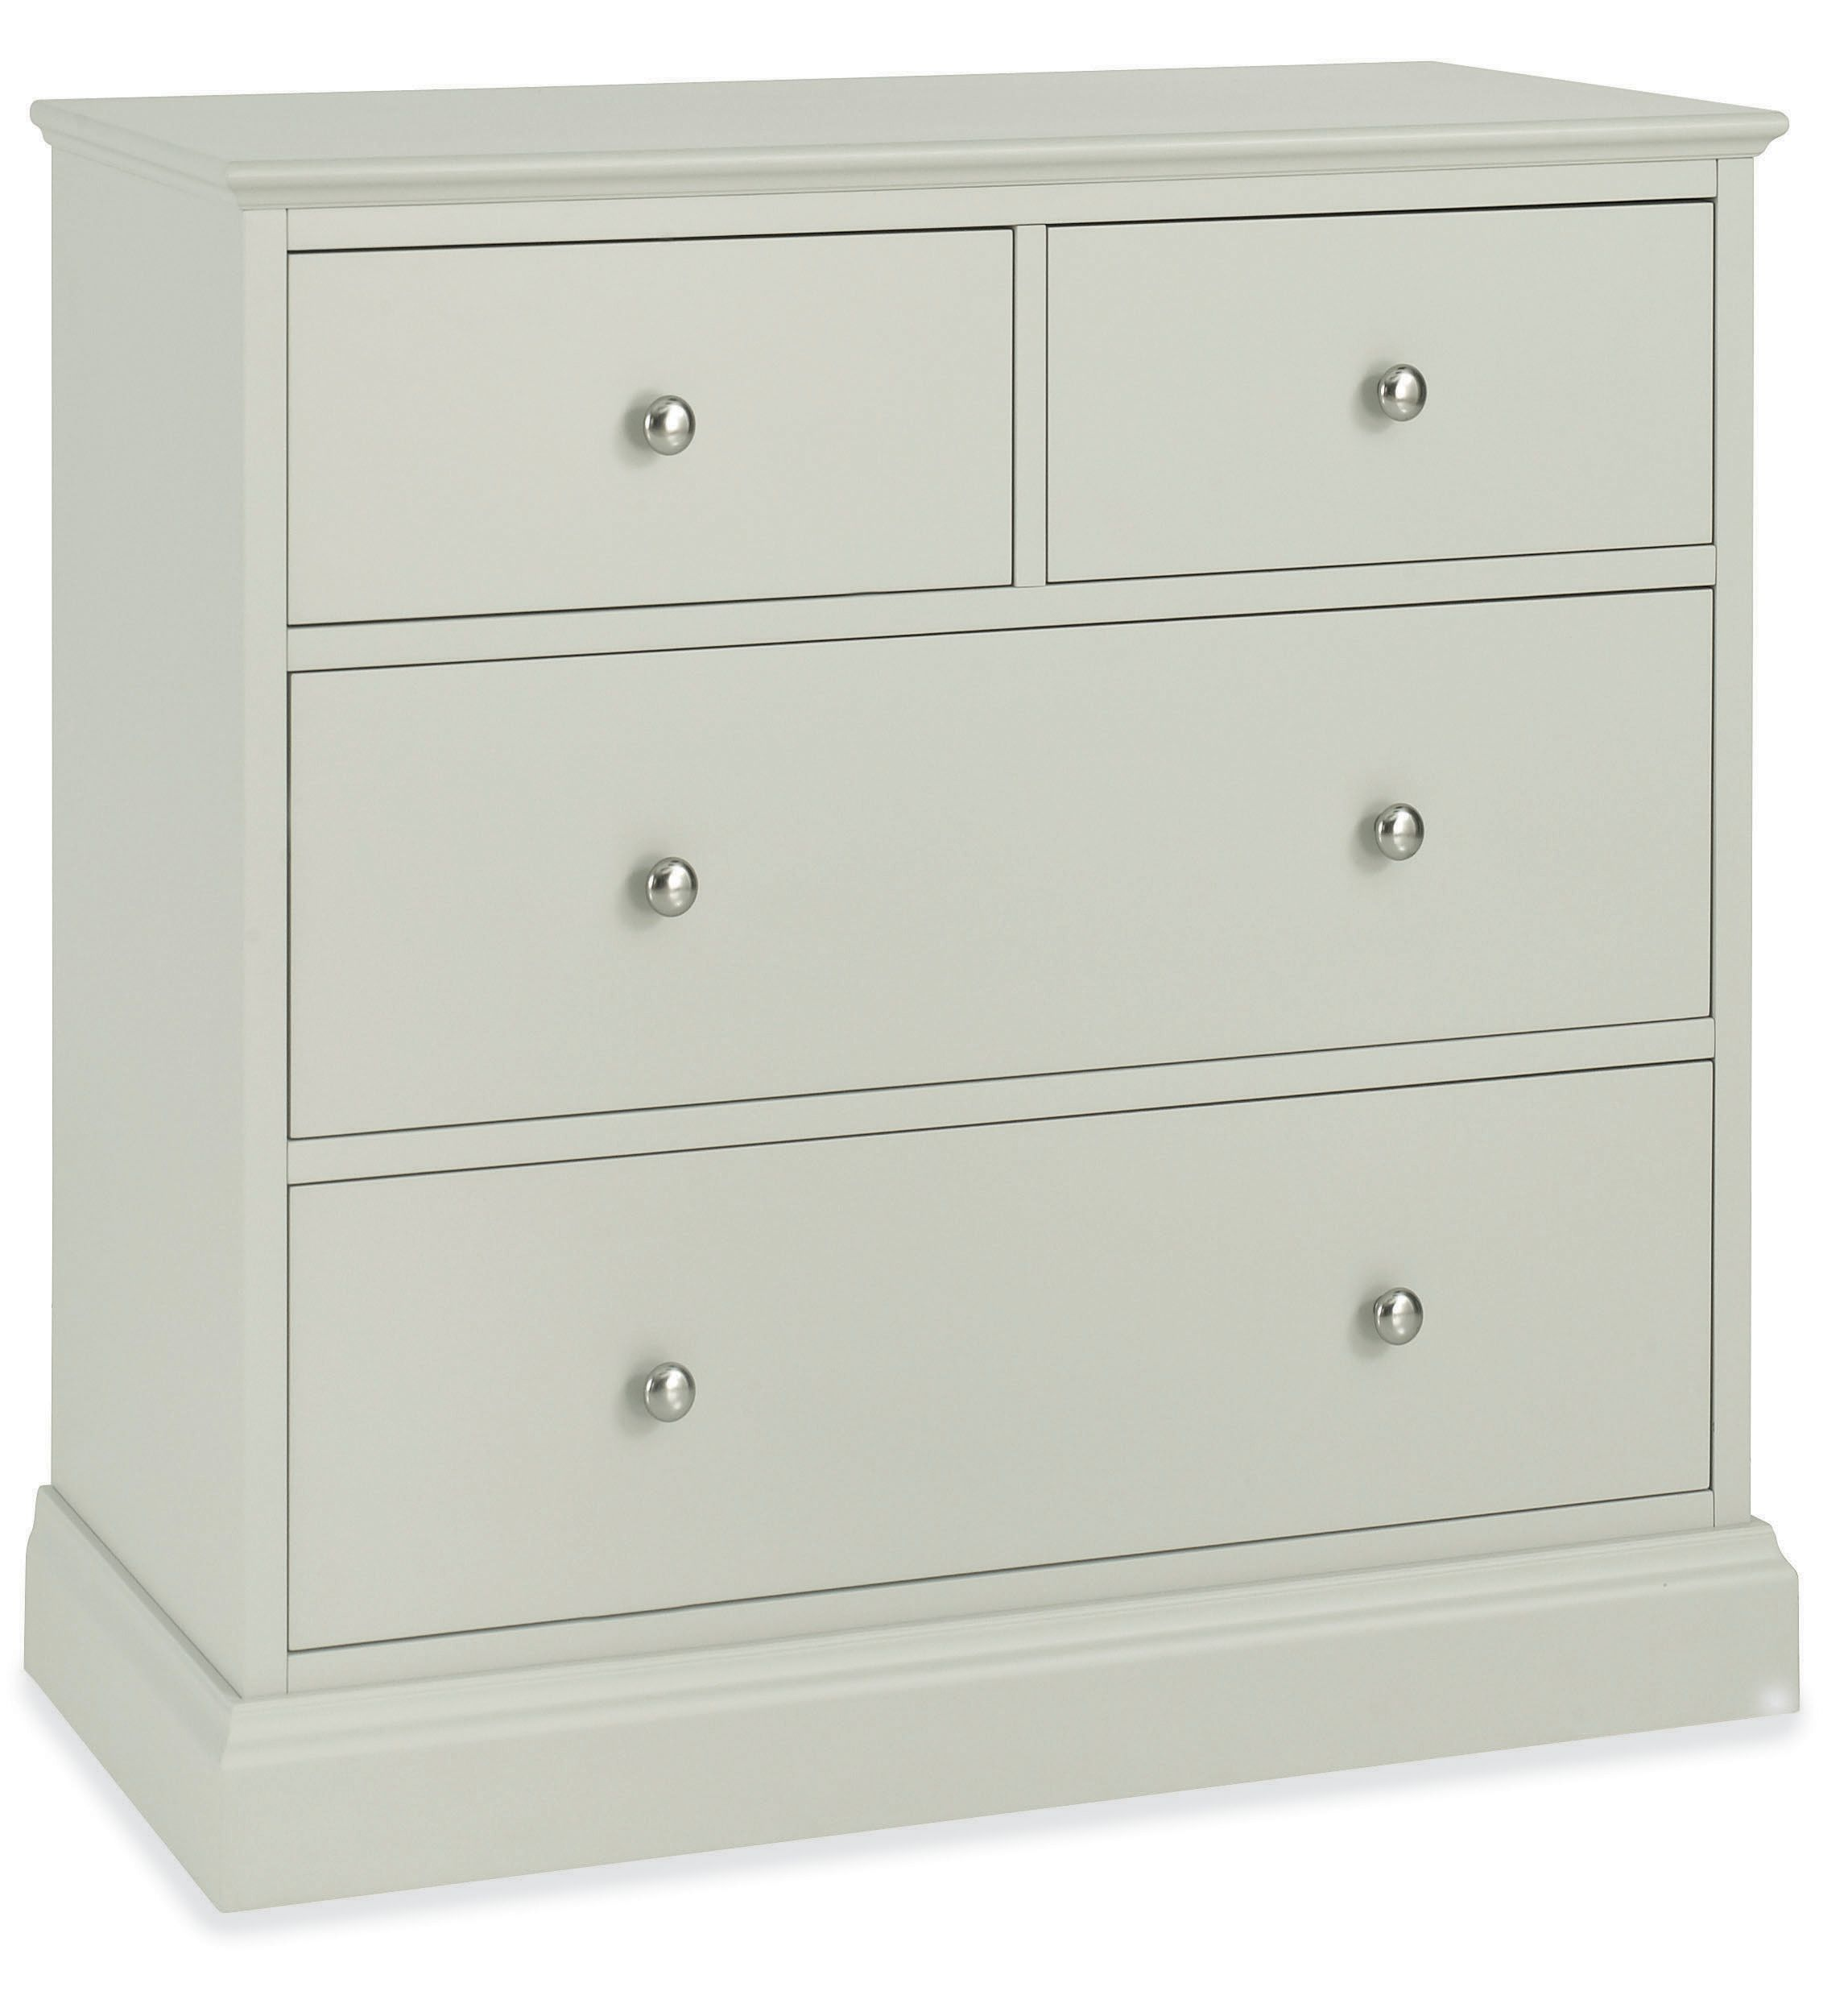 Cotton 4 drawer chest